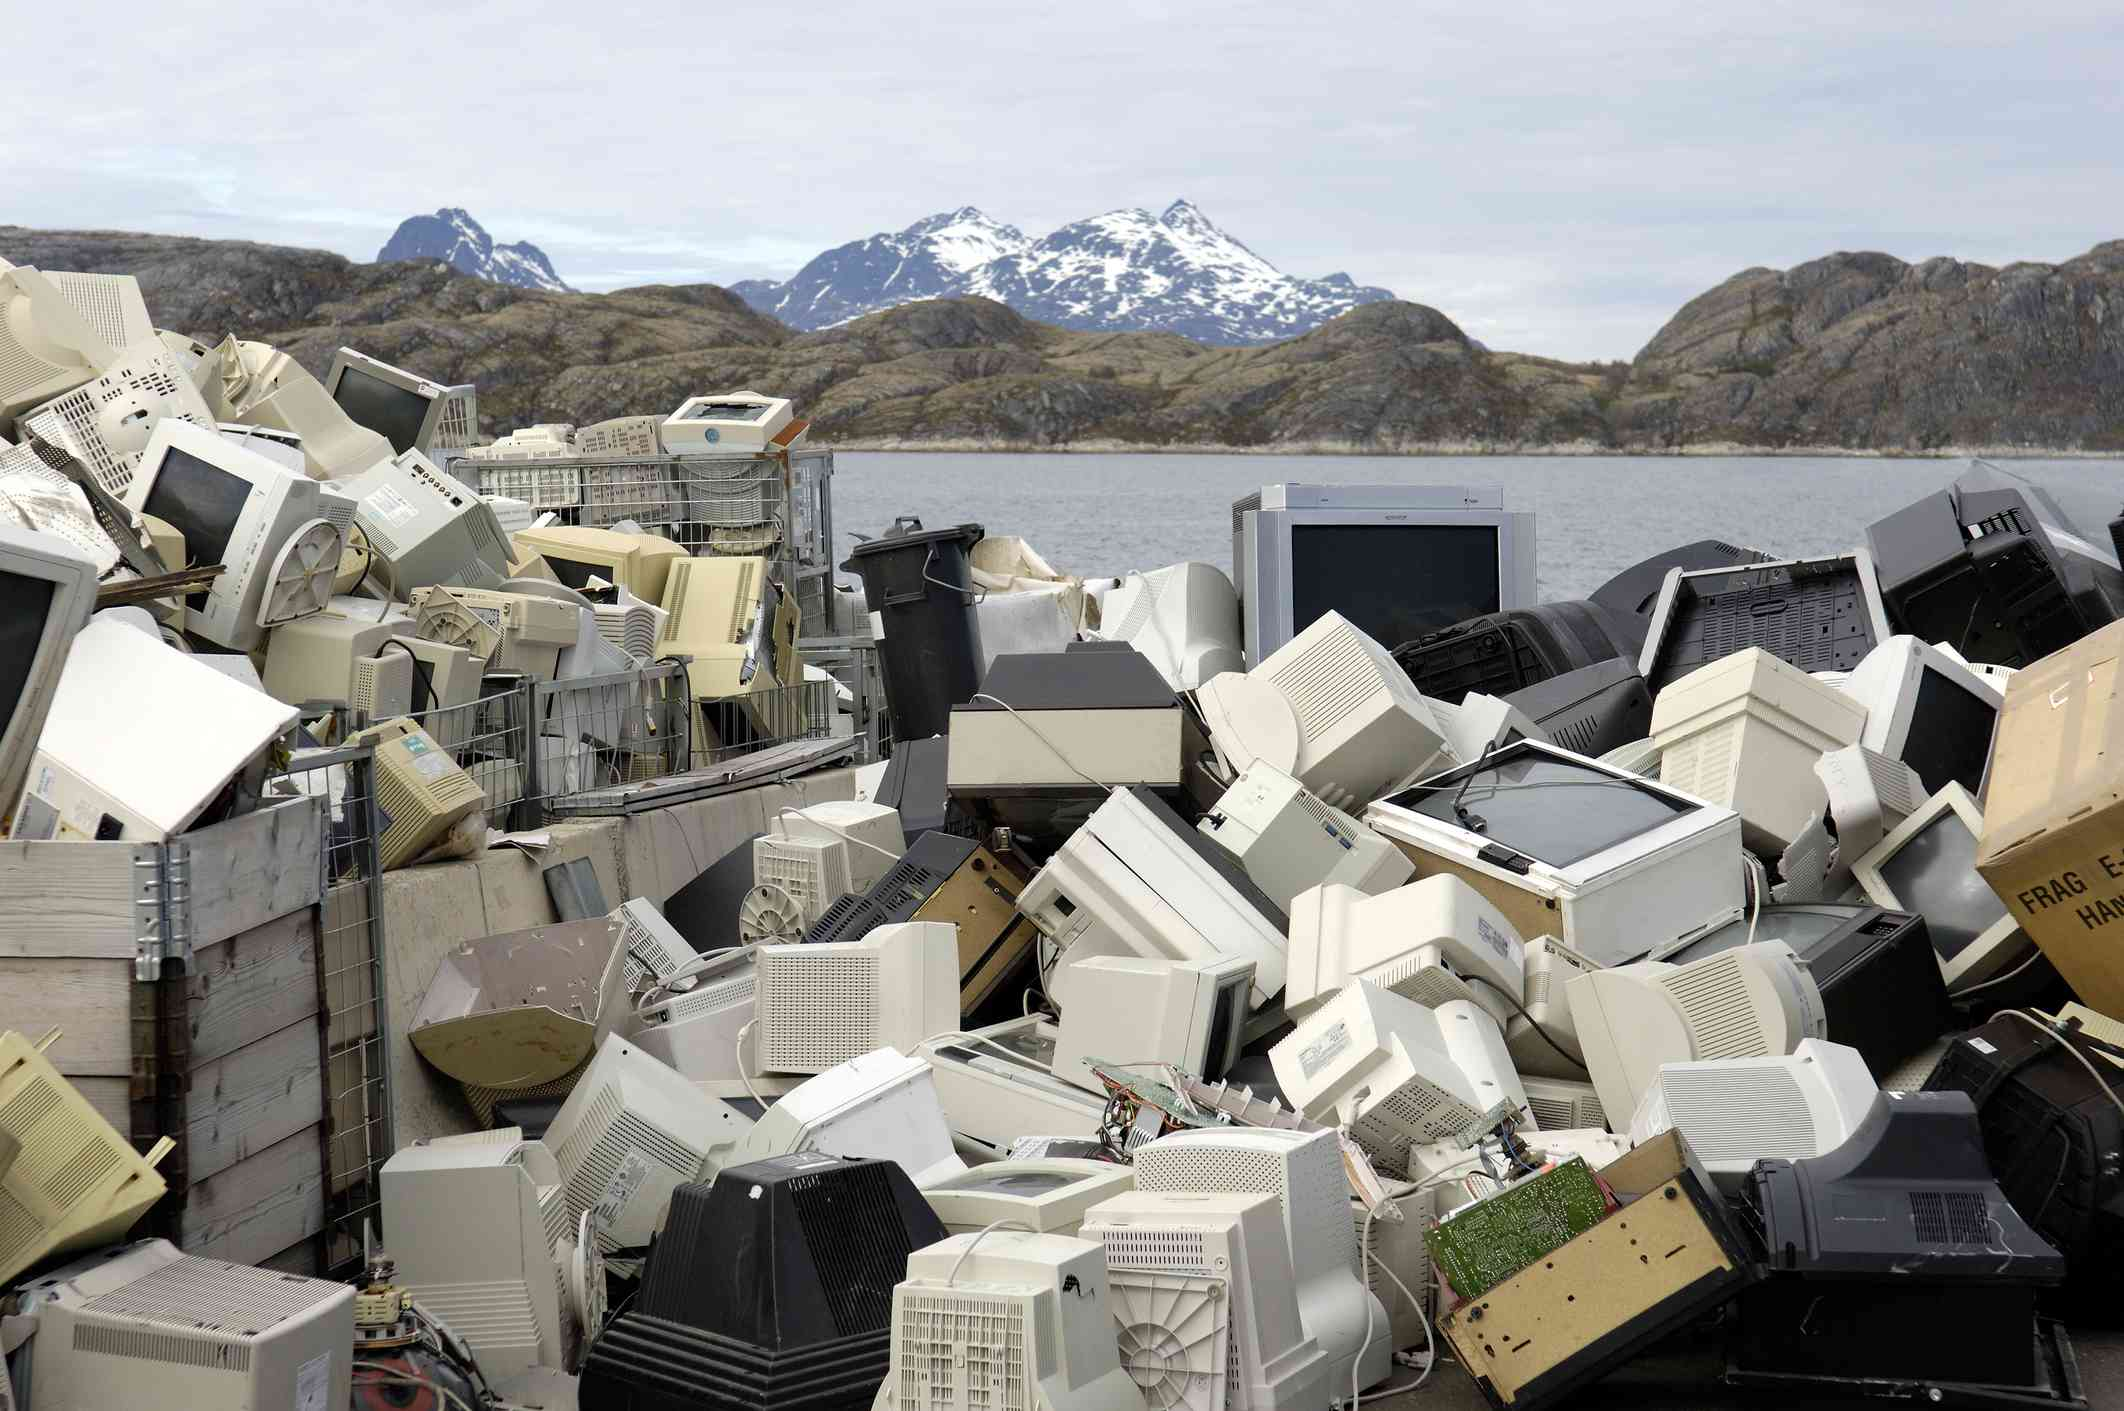 Piles of e-waste (old computer and electronics) in a landfill with a lake and mountains in the background.